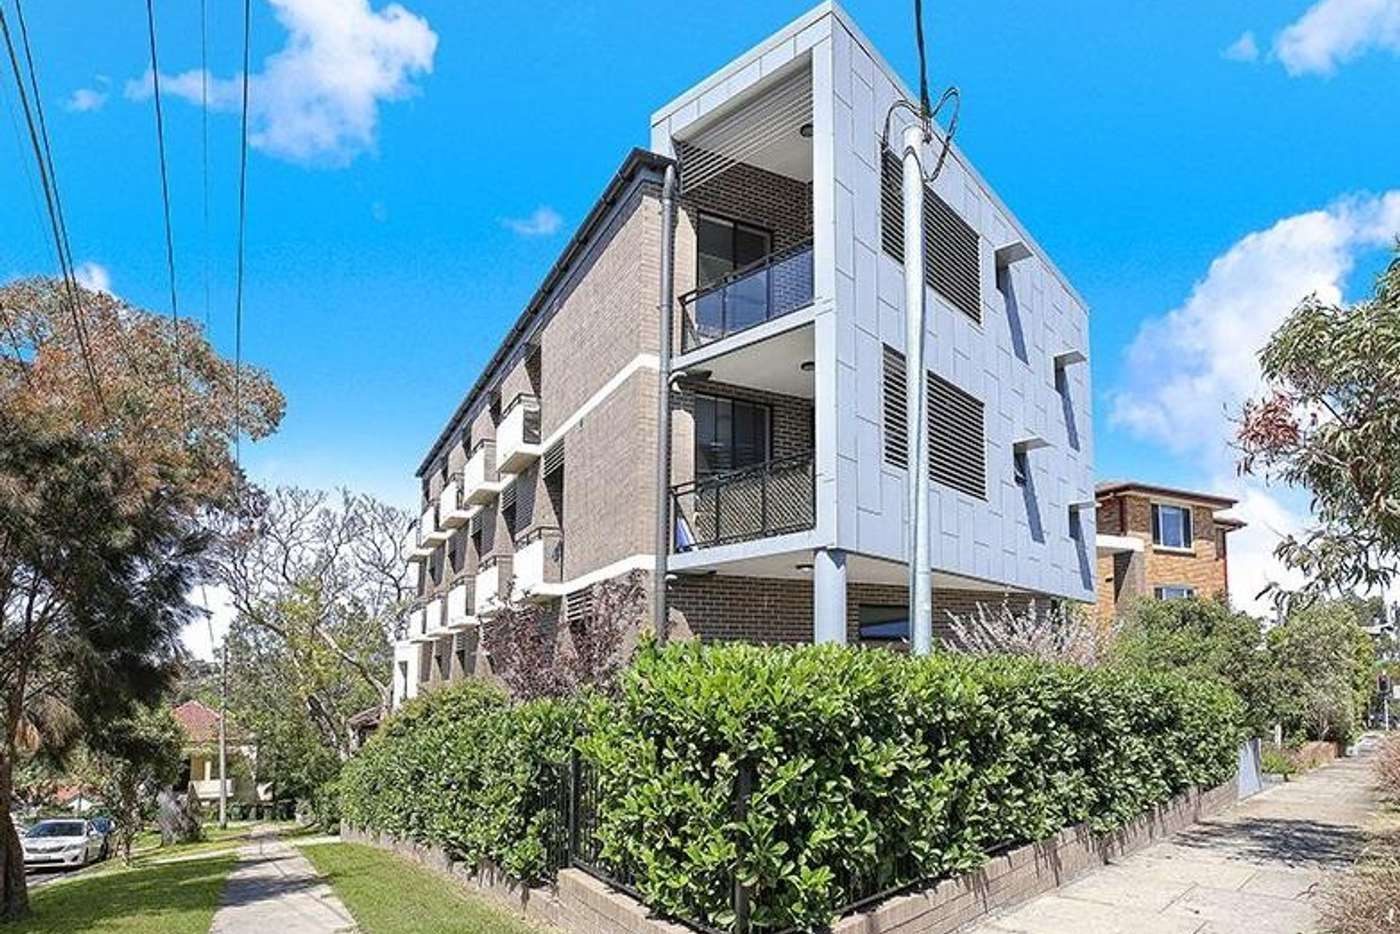 Main view of Homely studio listing, G.03/22 Grenwich Road, Greenwich NSW 2065